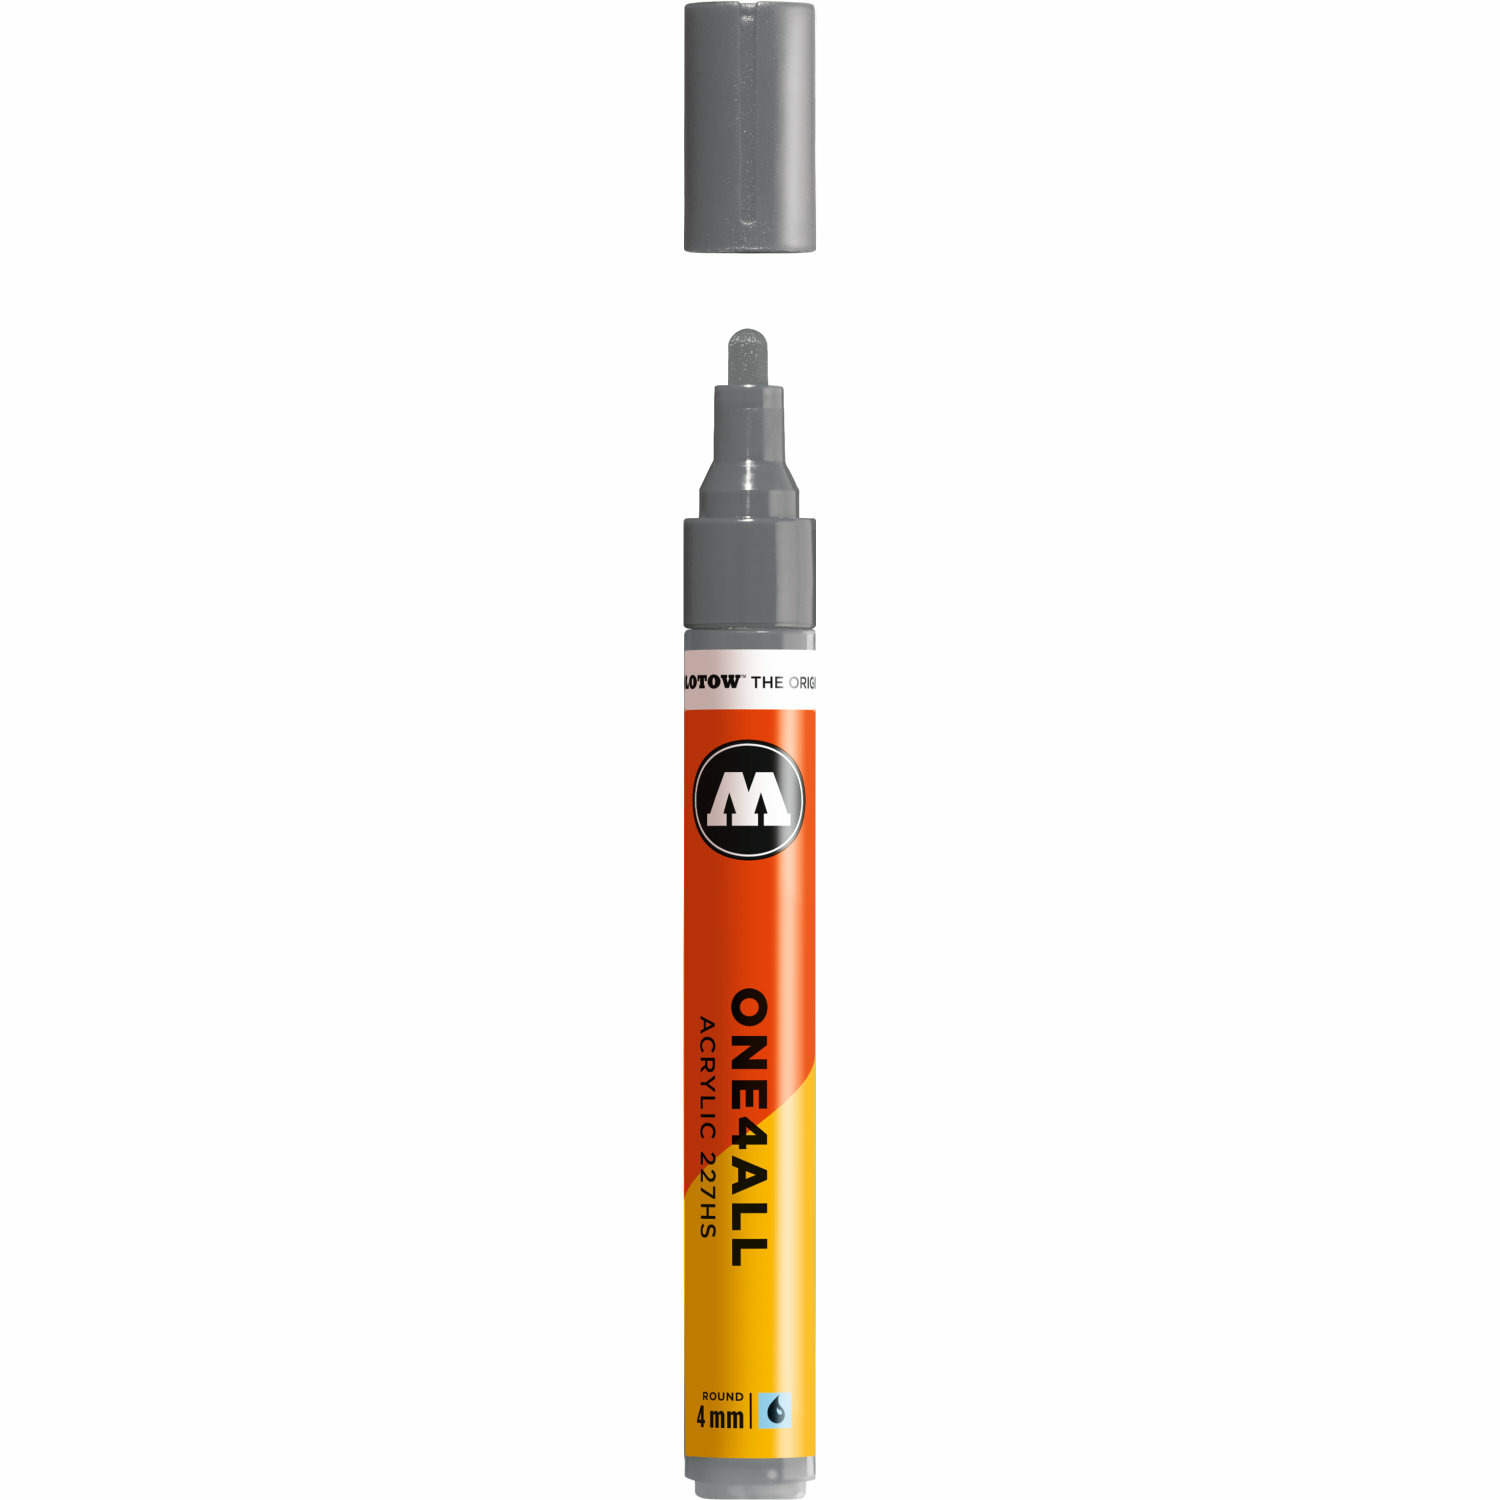 MOLOTOW_ONE4ALL_Pumpmarker_227HS_big_image